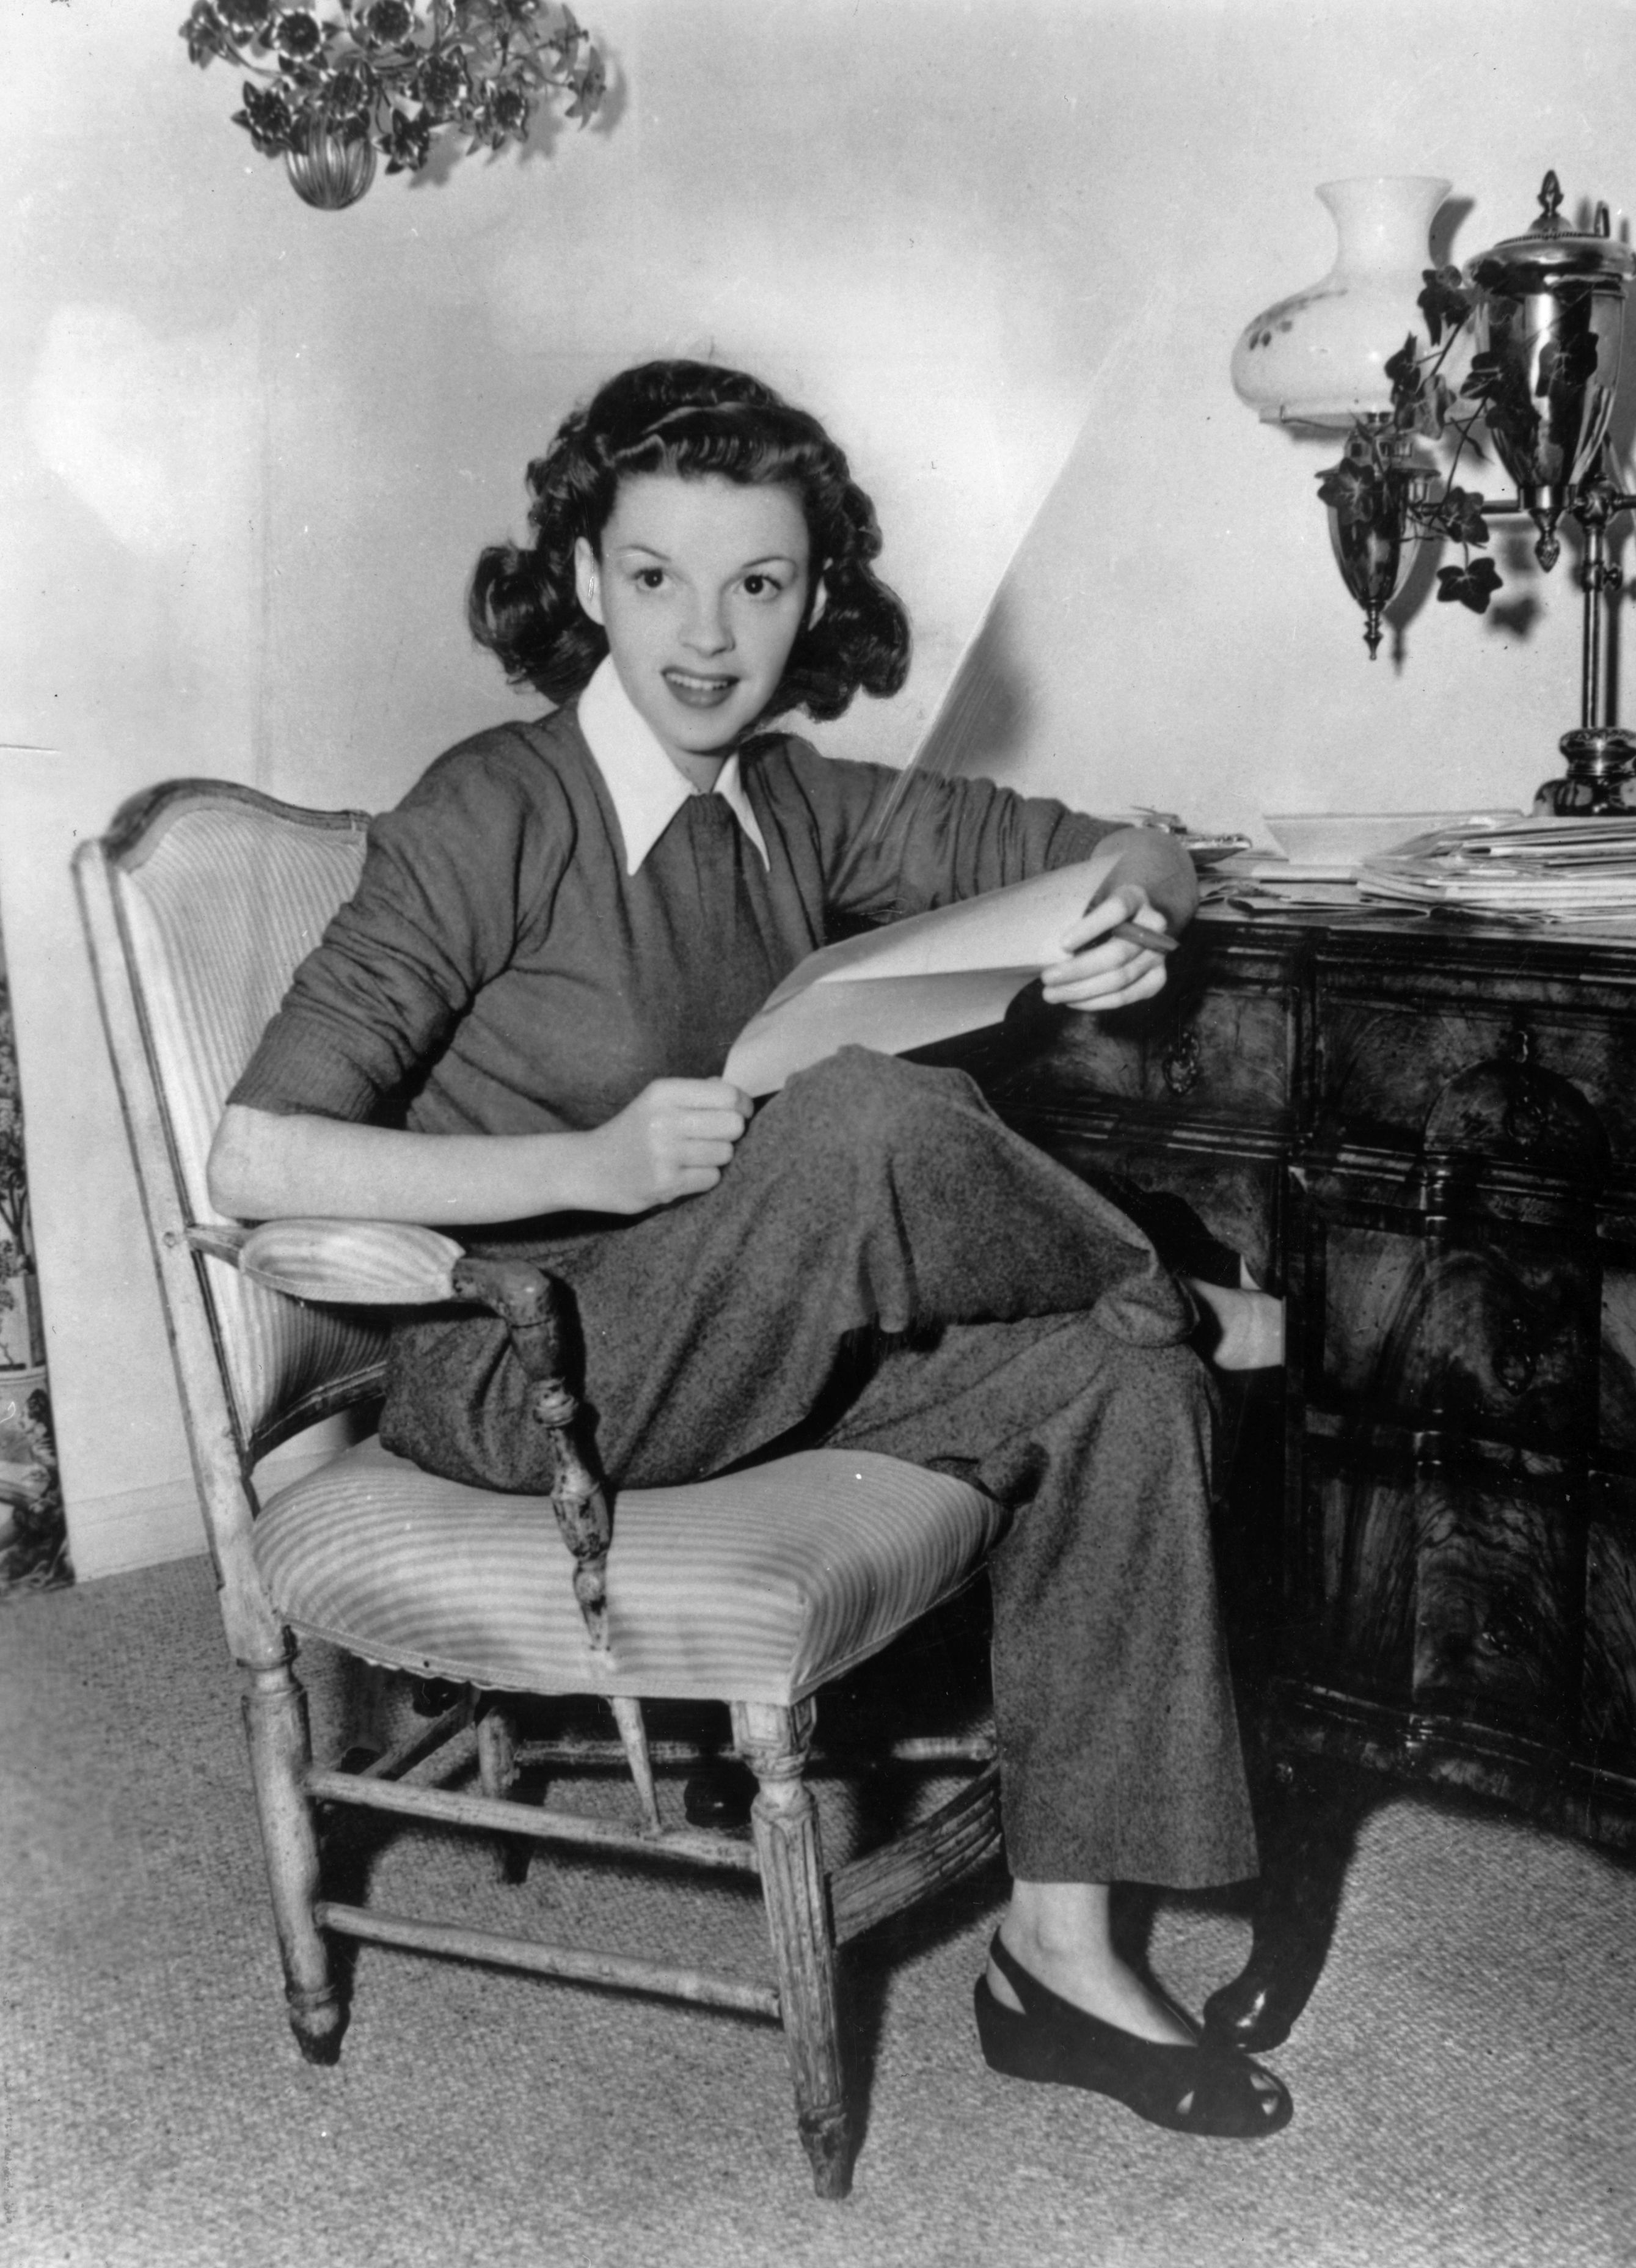 Judy Garland (Frances Ethel Gumm, 1922 - 1969) at home answering fan mail. | Source: Getty Images